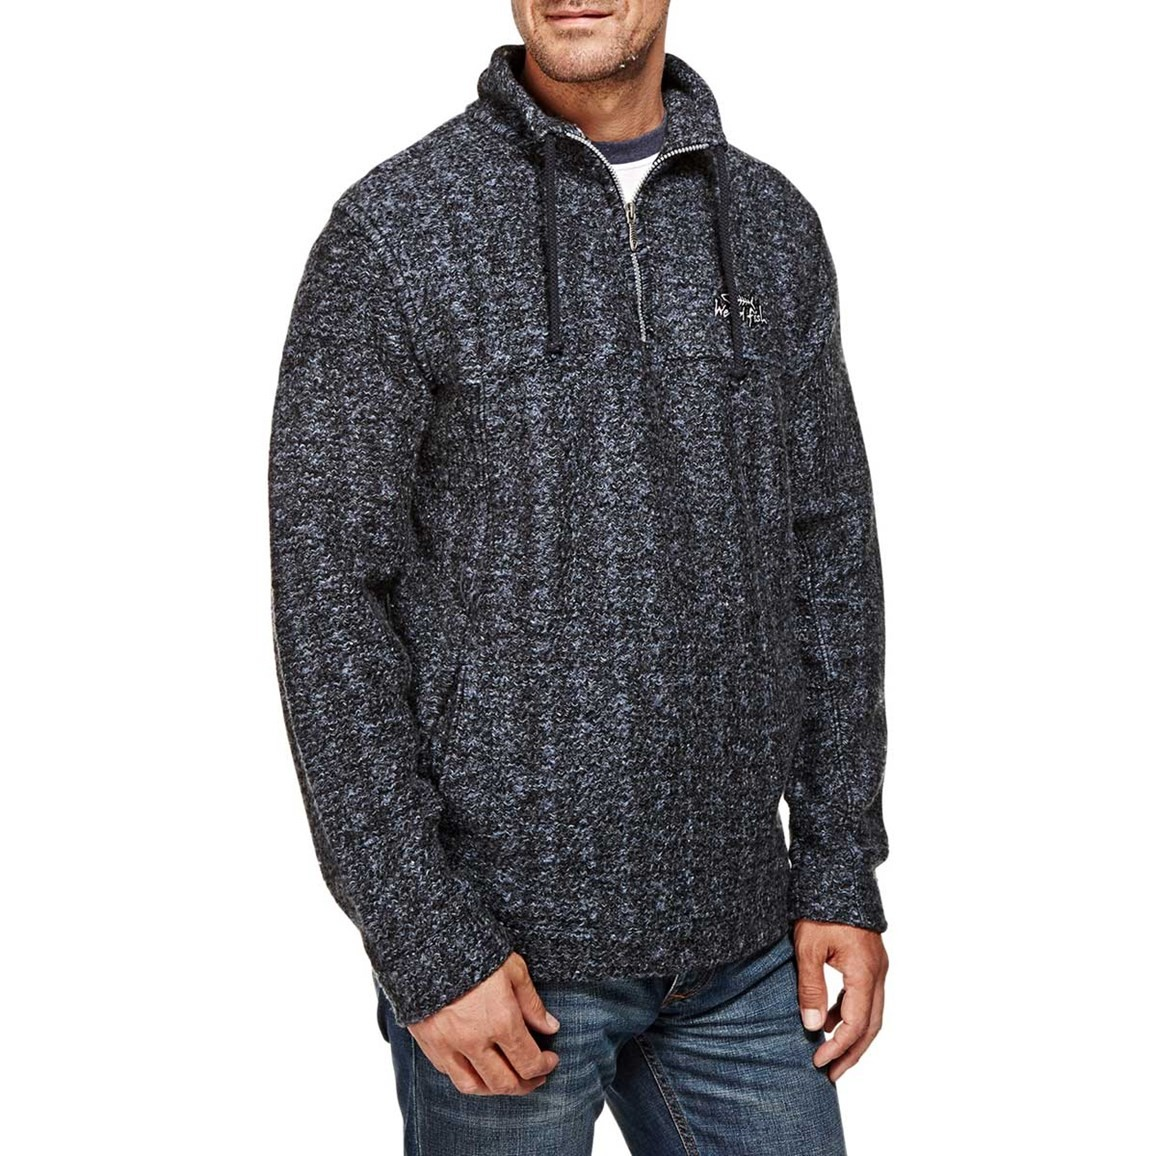 Image of Aardvark Panelled 1/4 Zip Soft Knit Fleece Sweatshirt Ebony